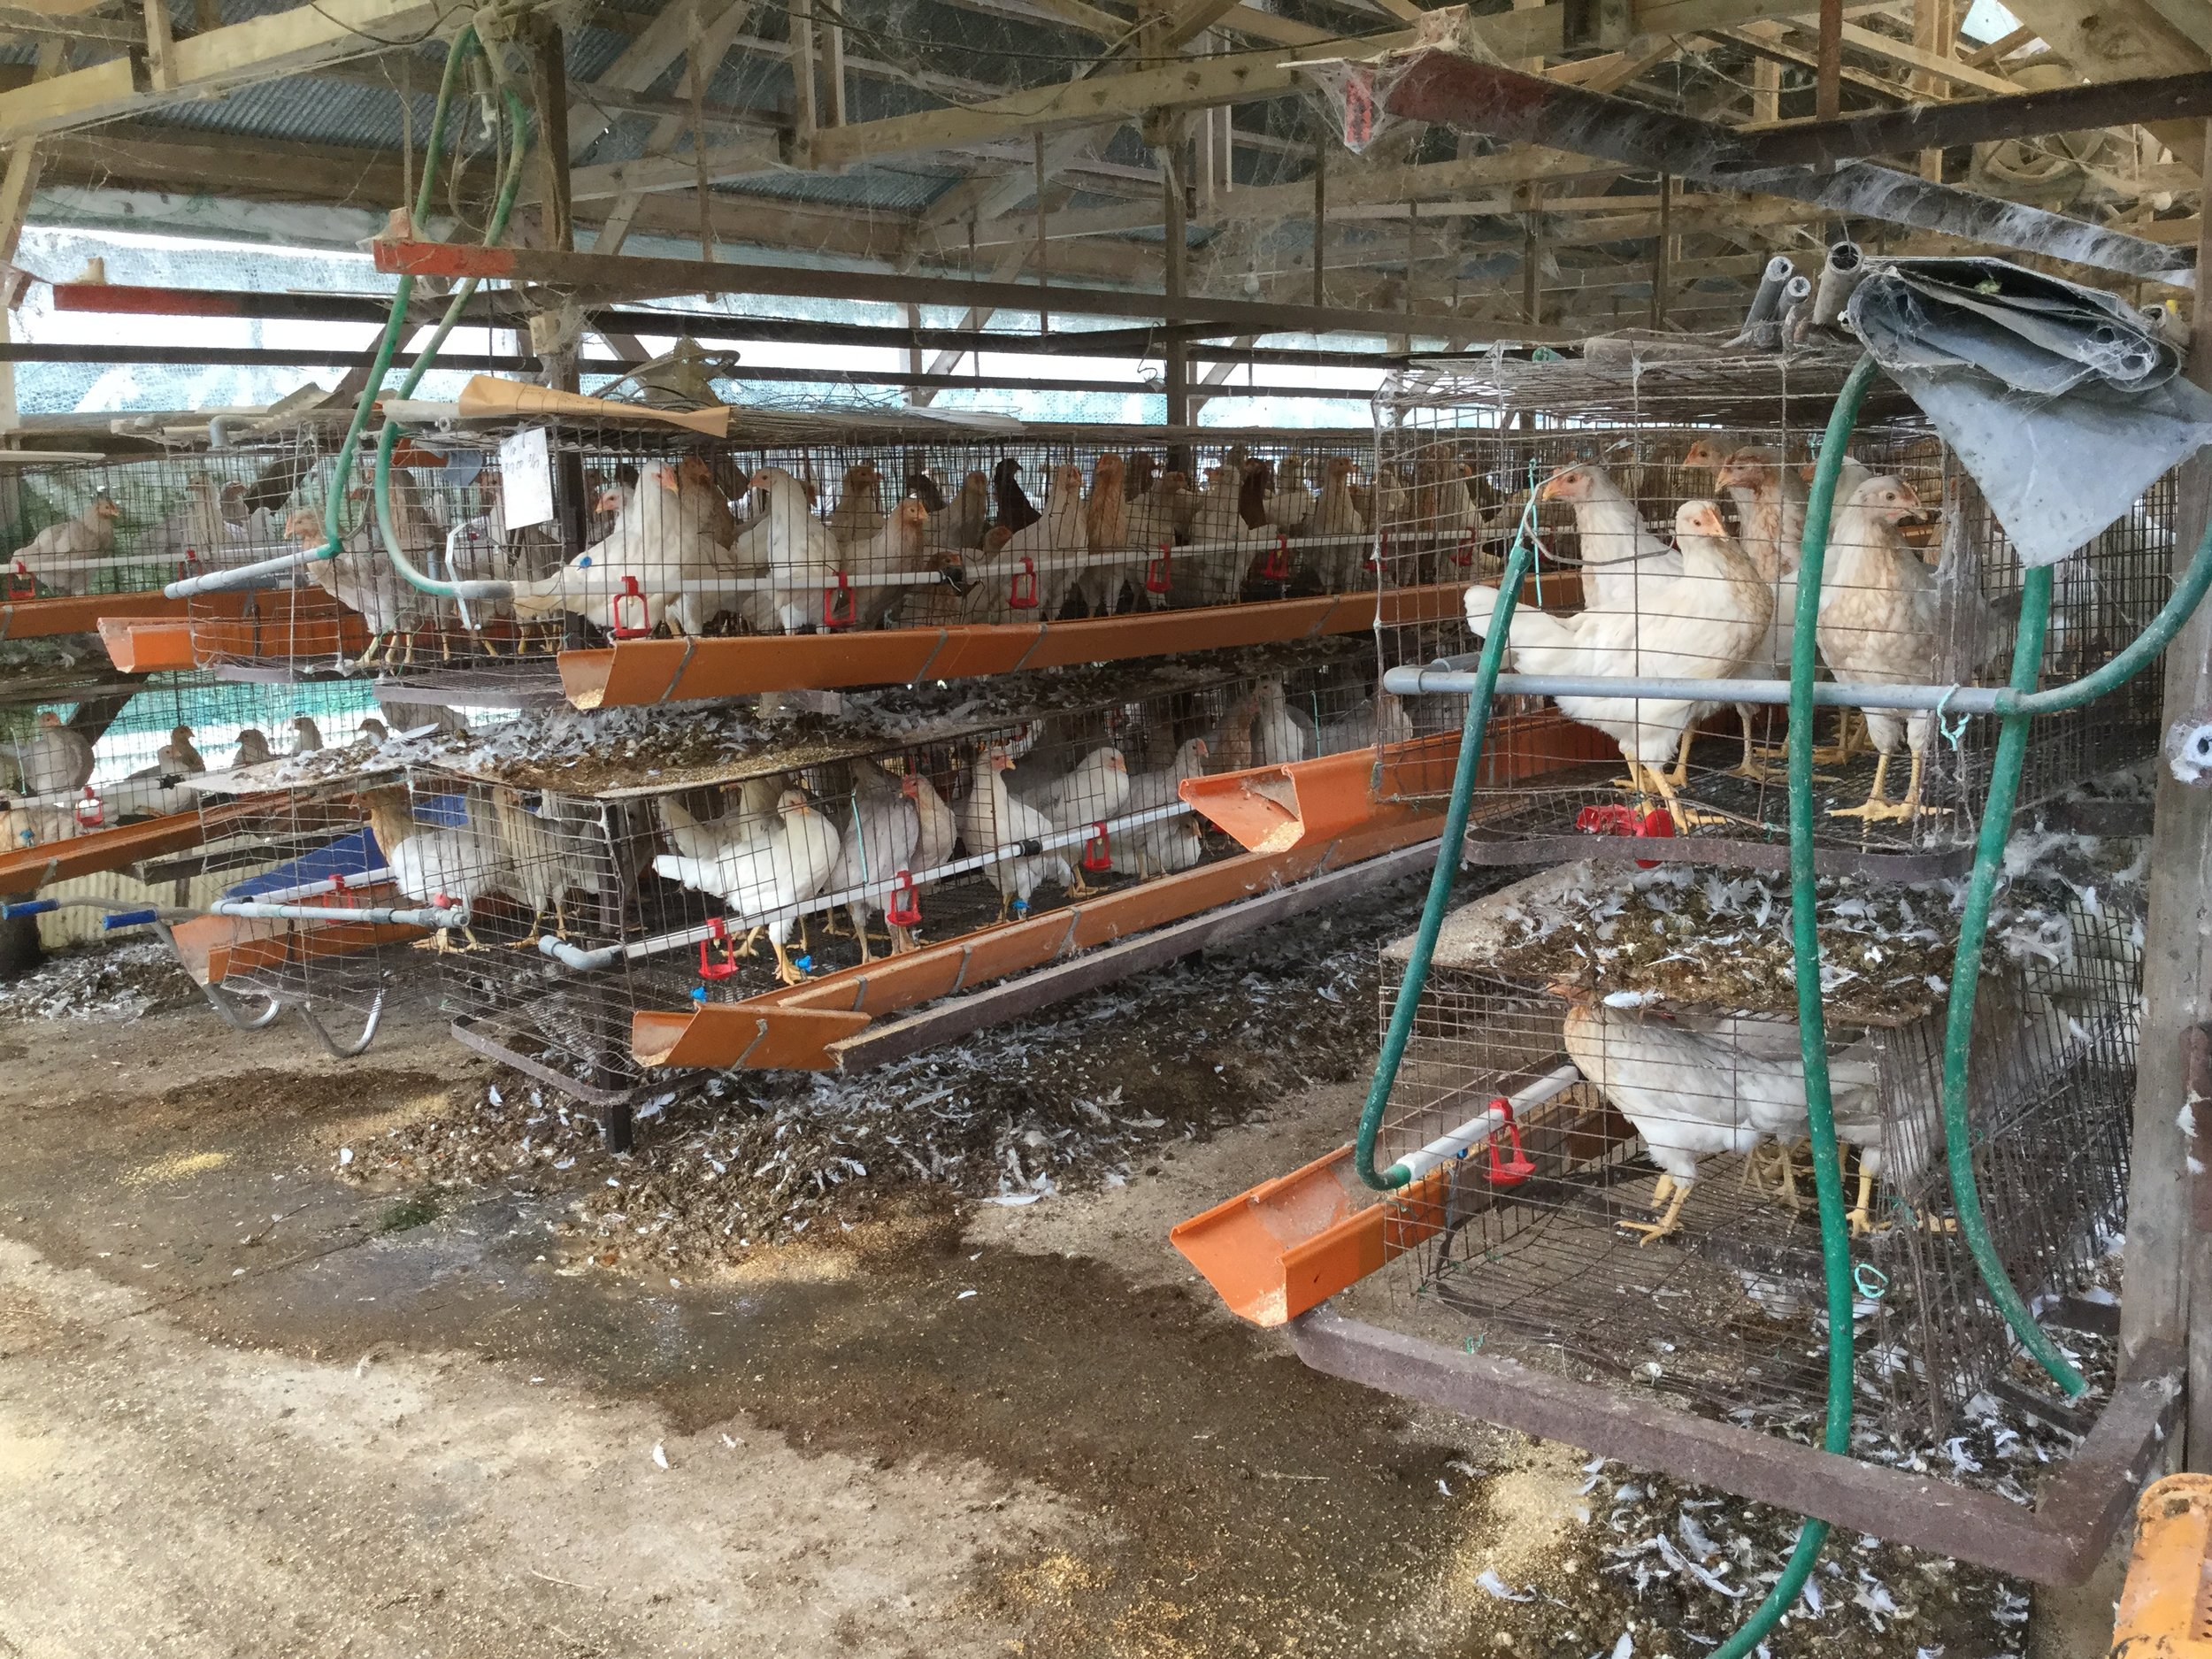 Lots of chickens.  The white ones were stacked two storeys high.